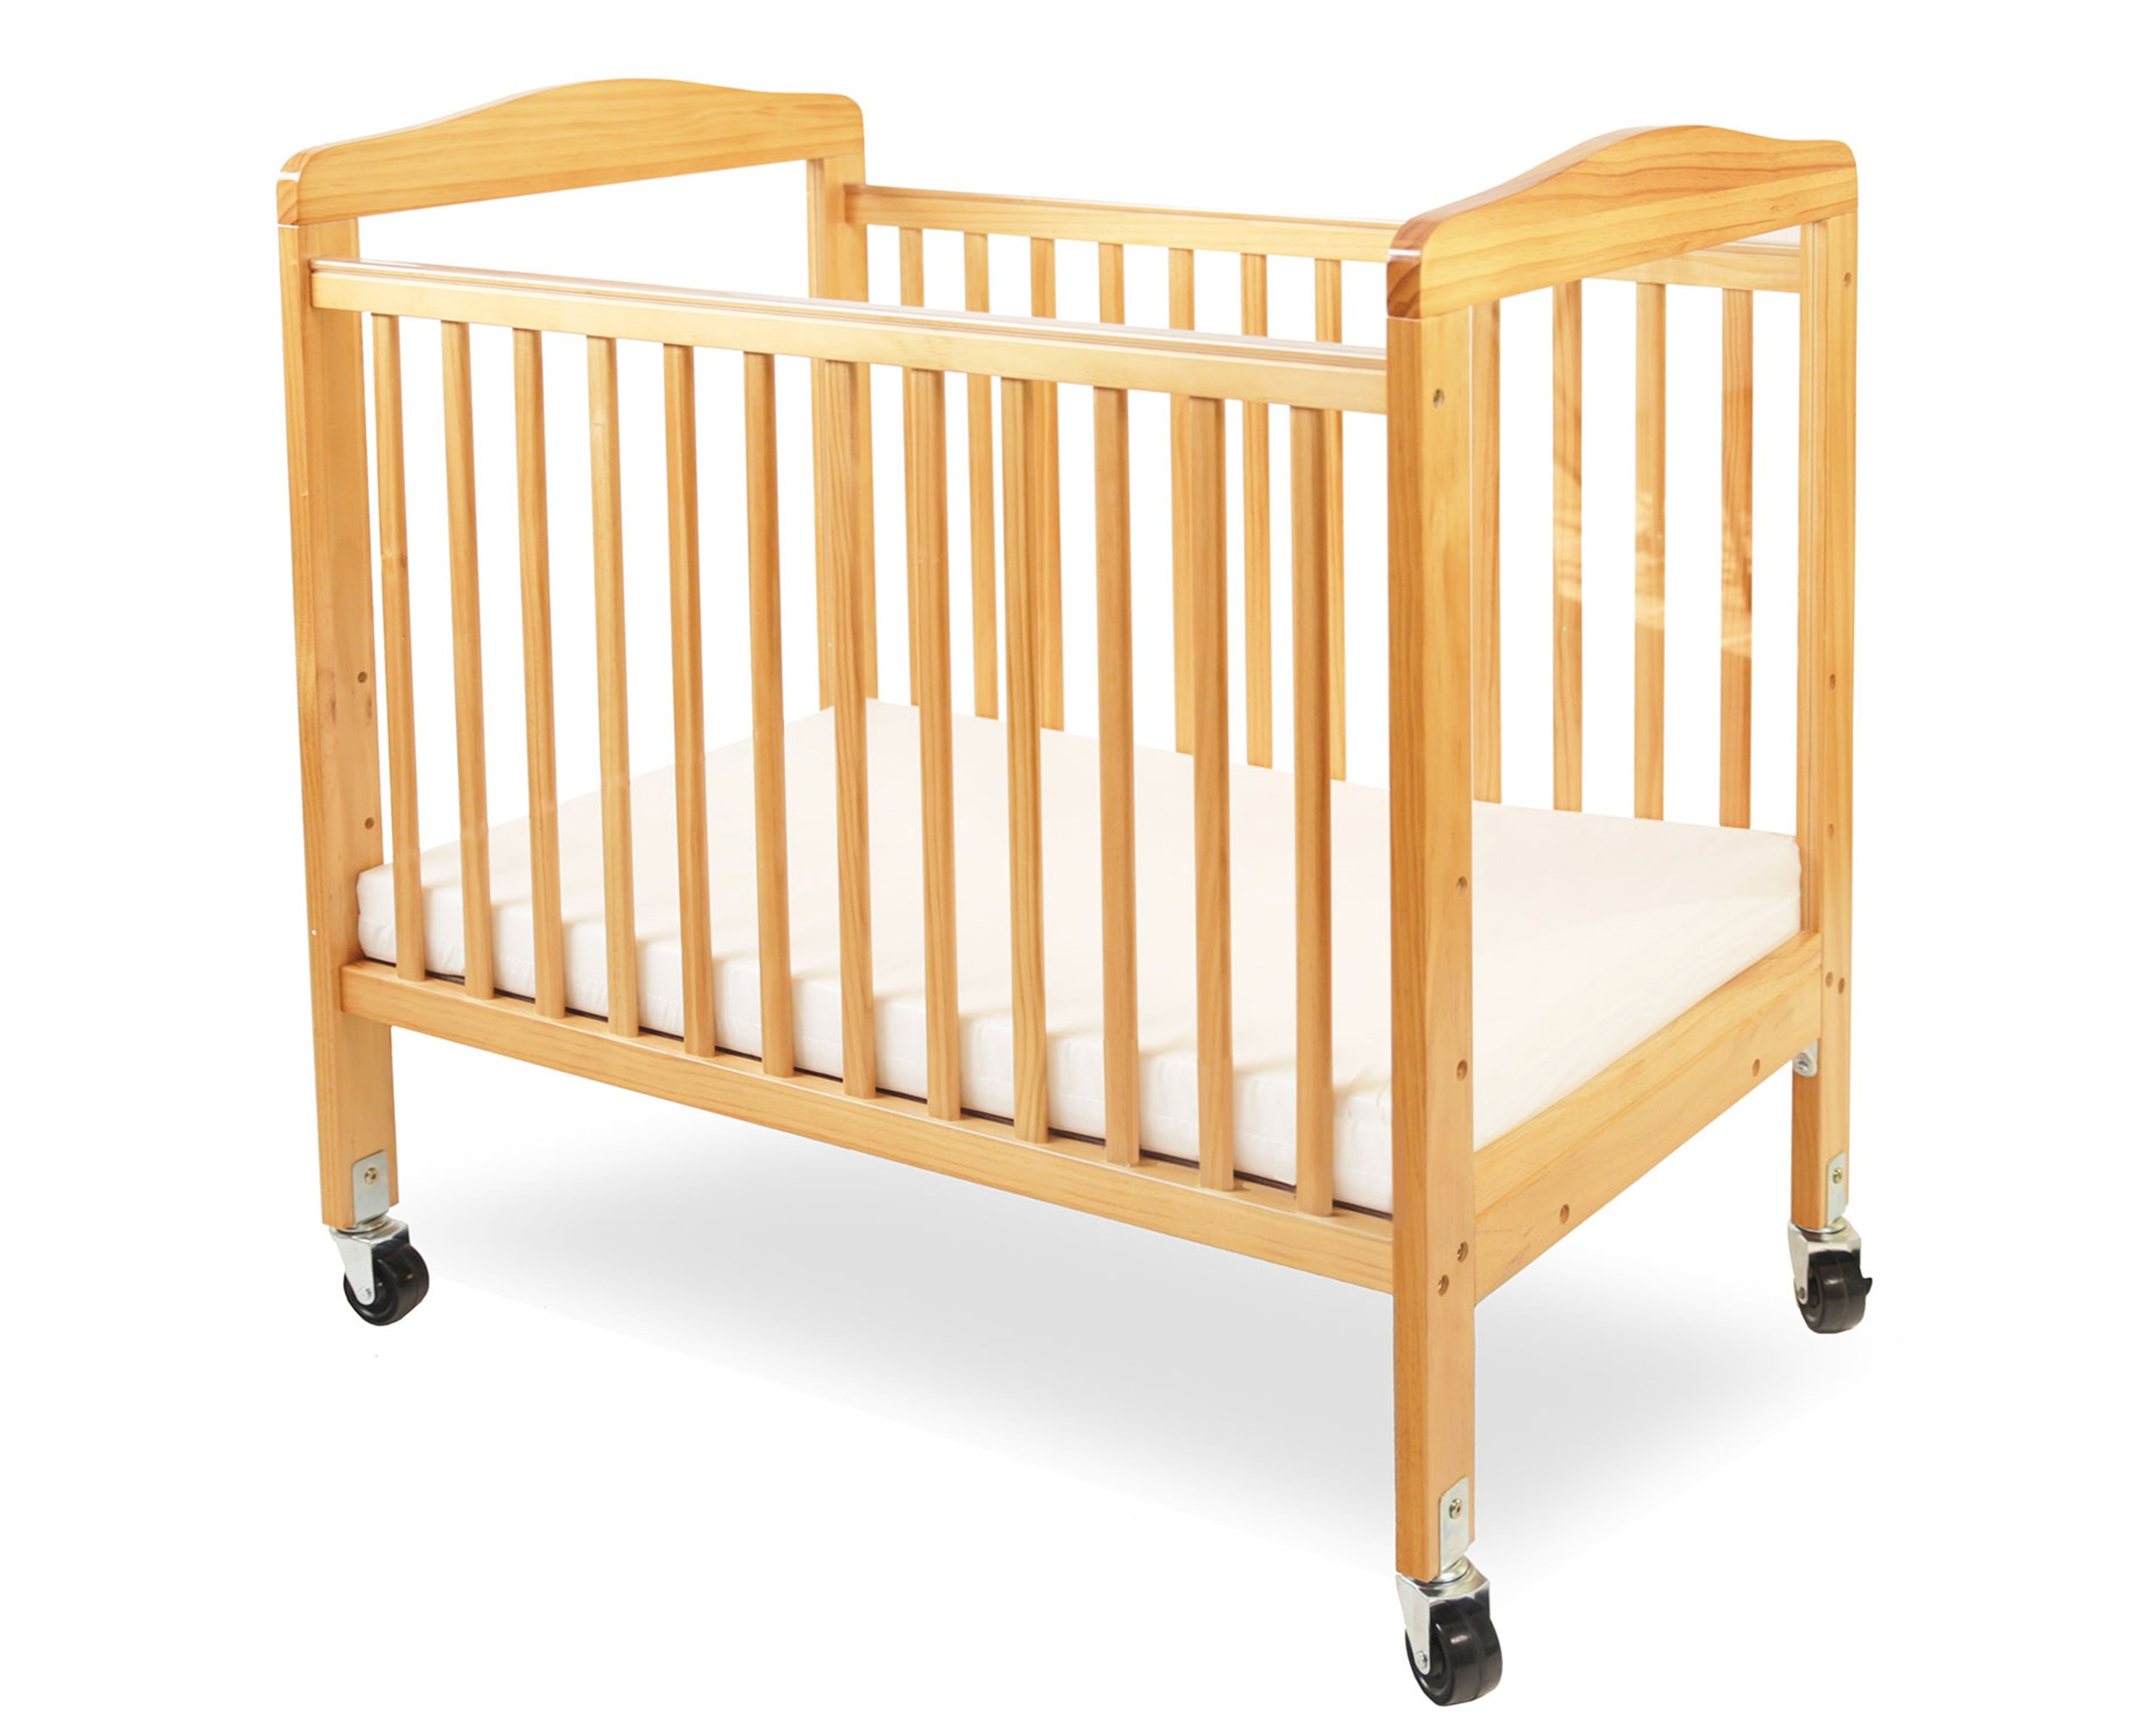 LA Baby Compact Non-Folding Wooden Window Crib, Natural by L.A. Baby